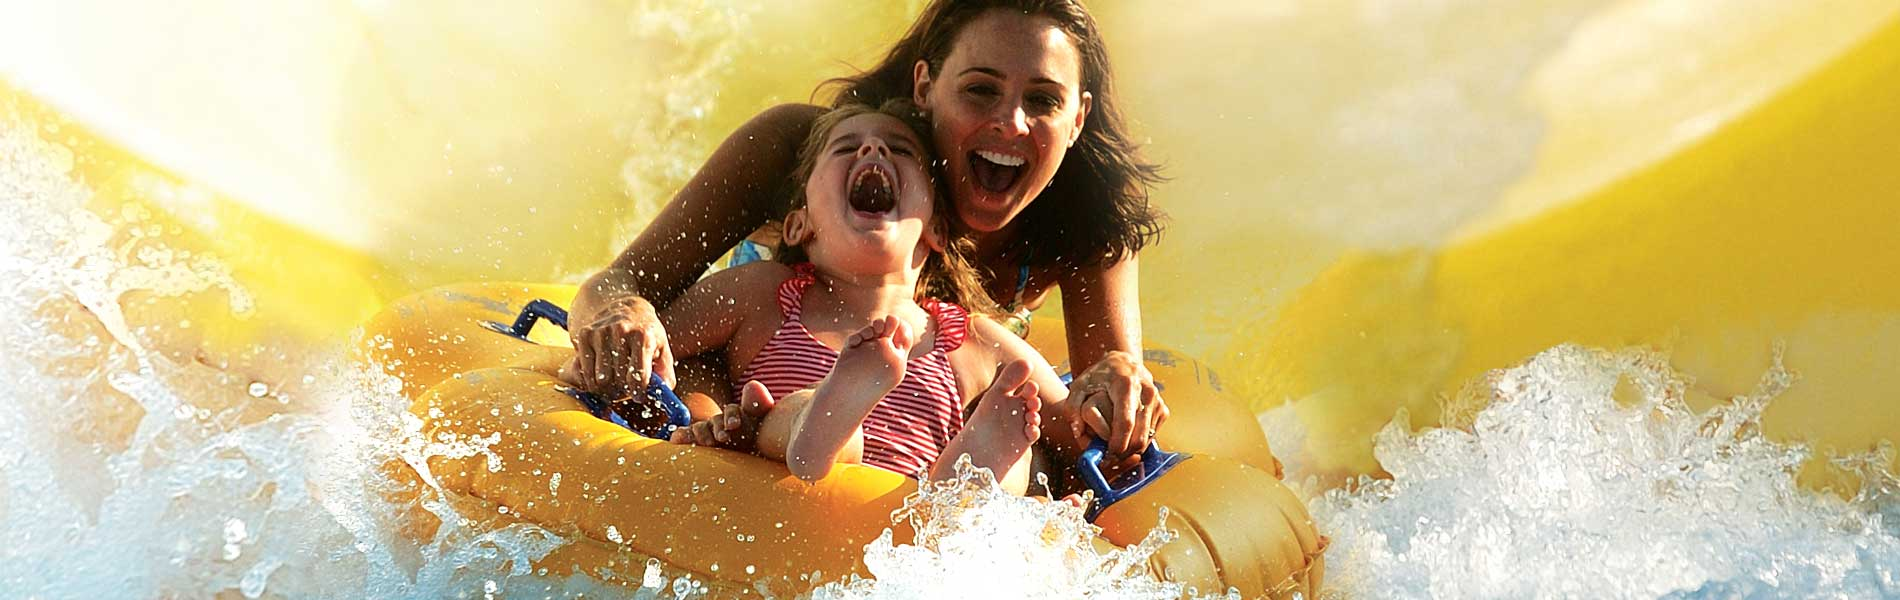 Mom and daughter on waterslide